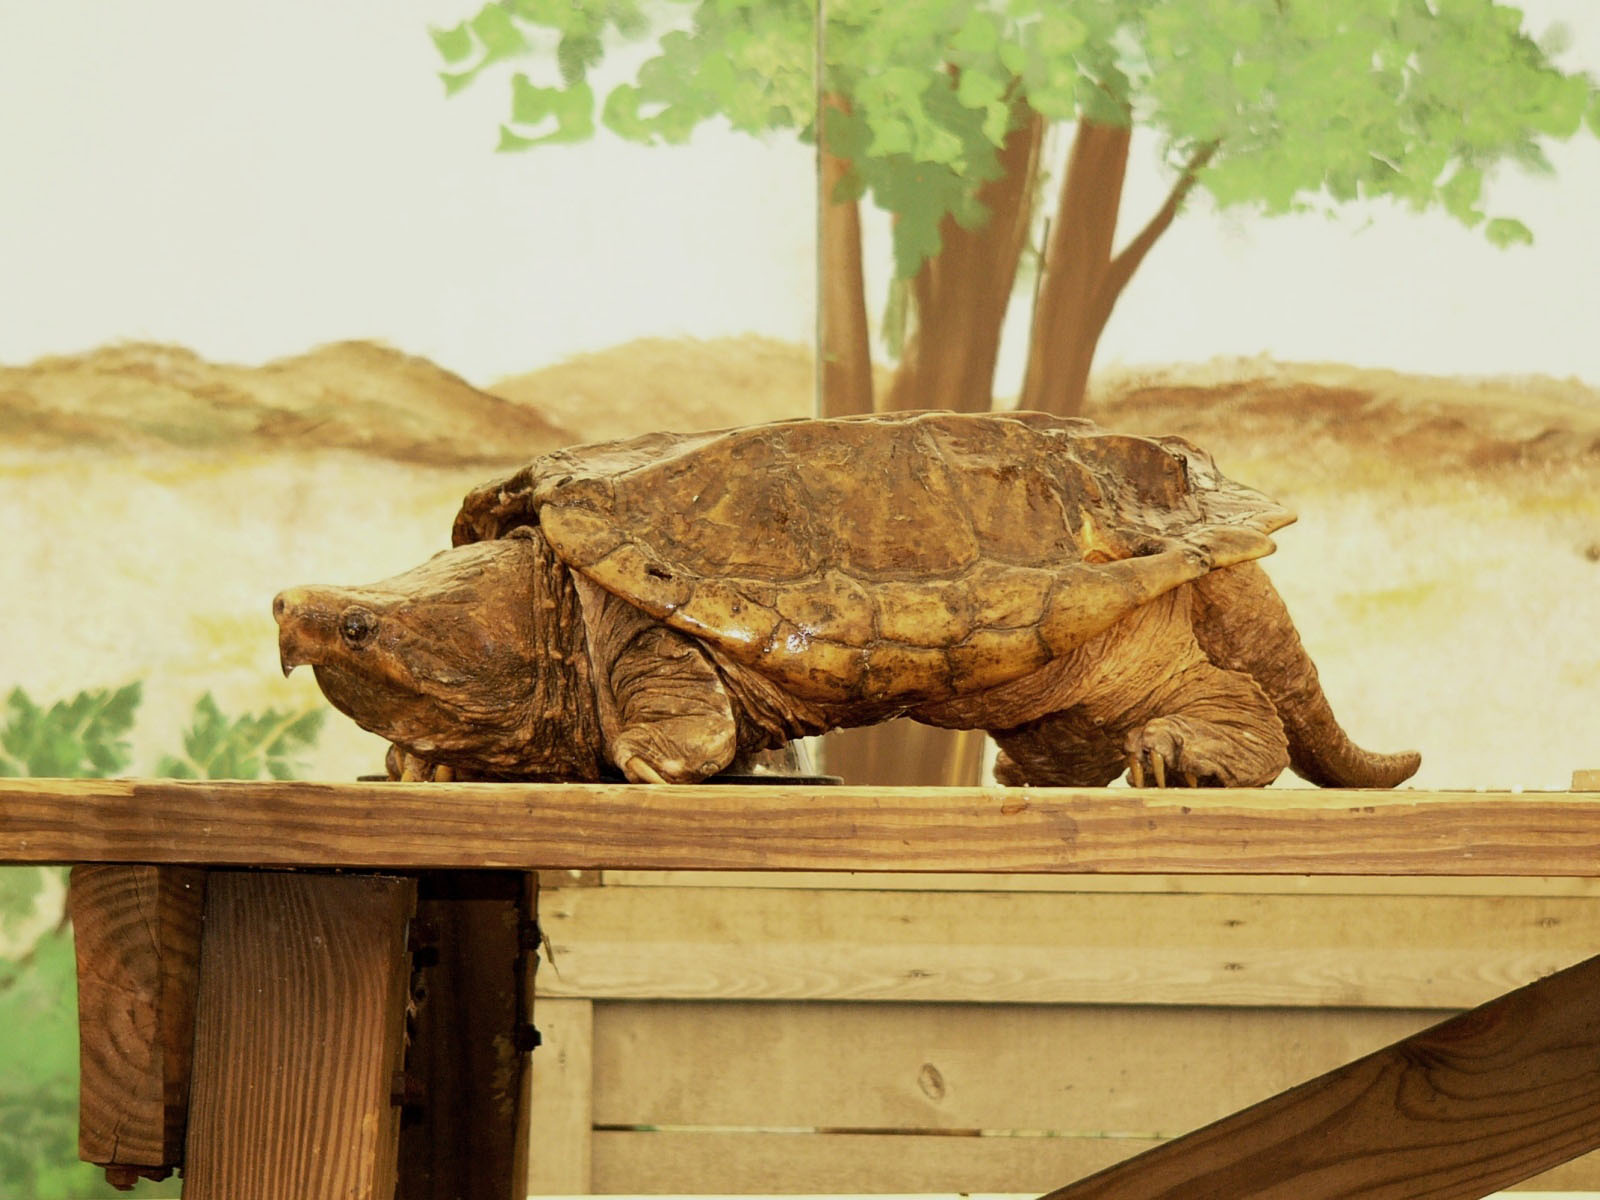 The Online Zoo - Alligator Snapping Turtle